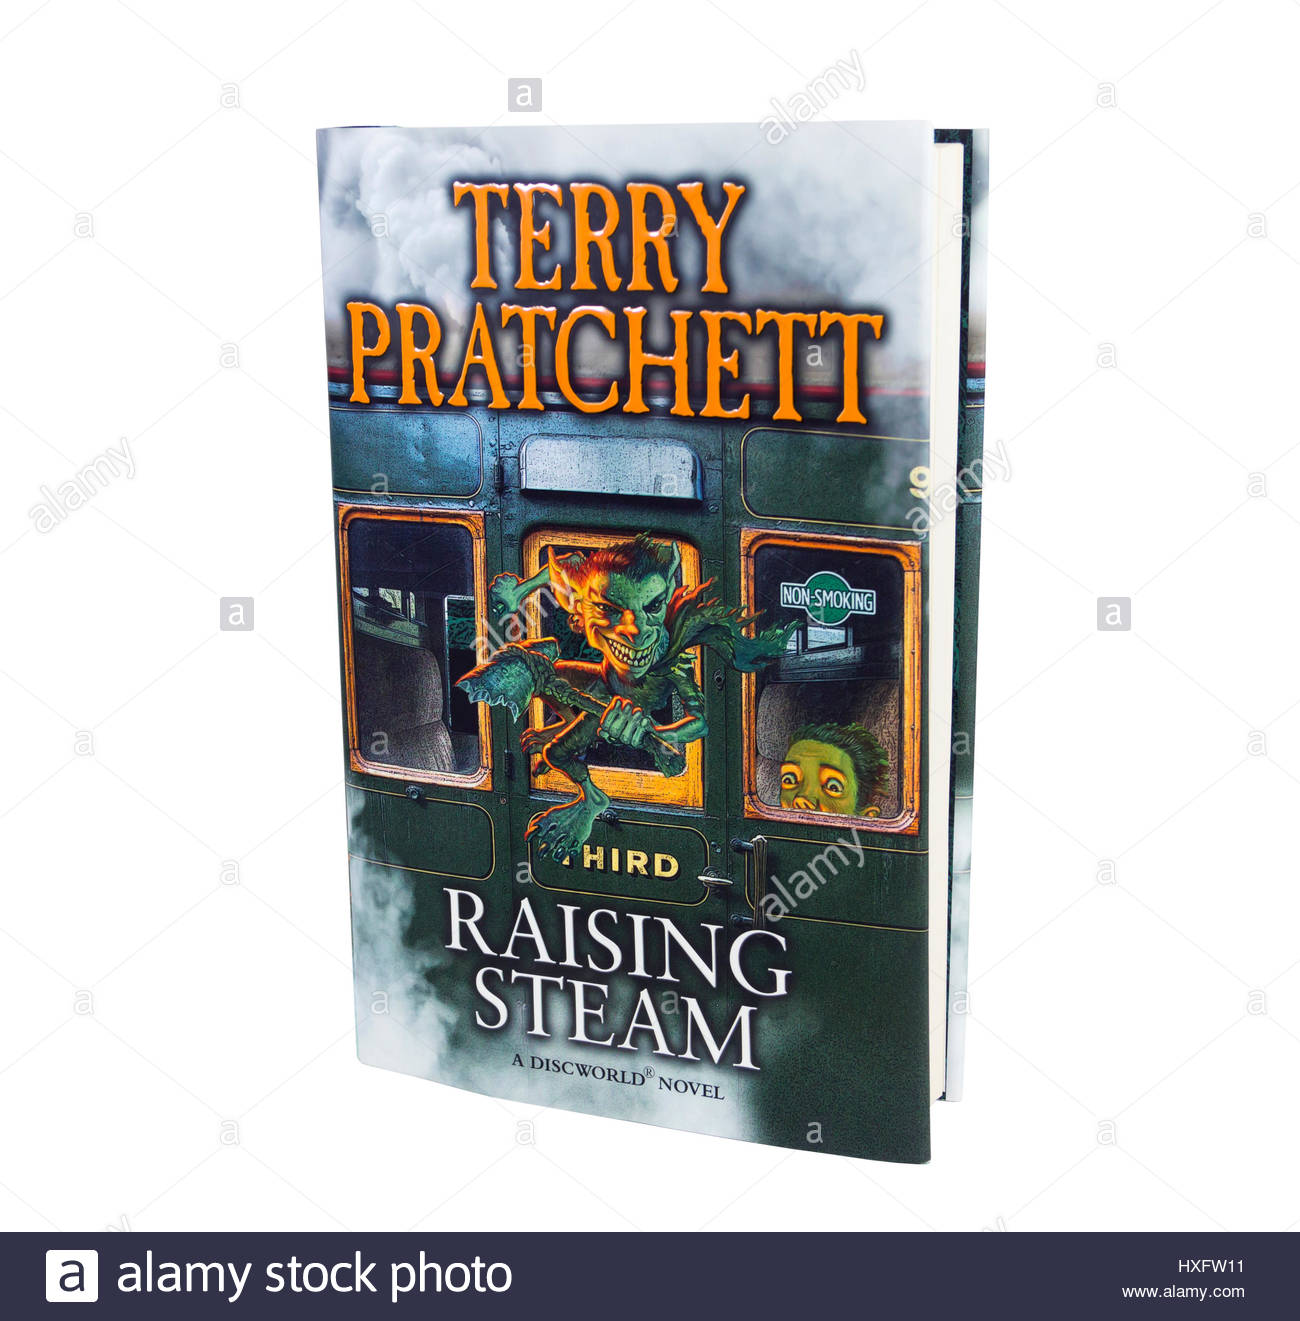 Hardback book with dustjacket of 'Raising Steam', the fantasy genre  book by Terry Pratchett in his Discworld - Stock Image